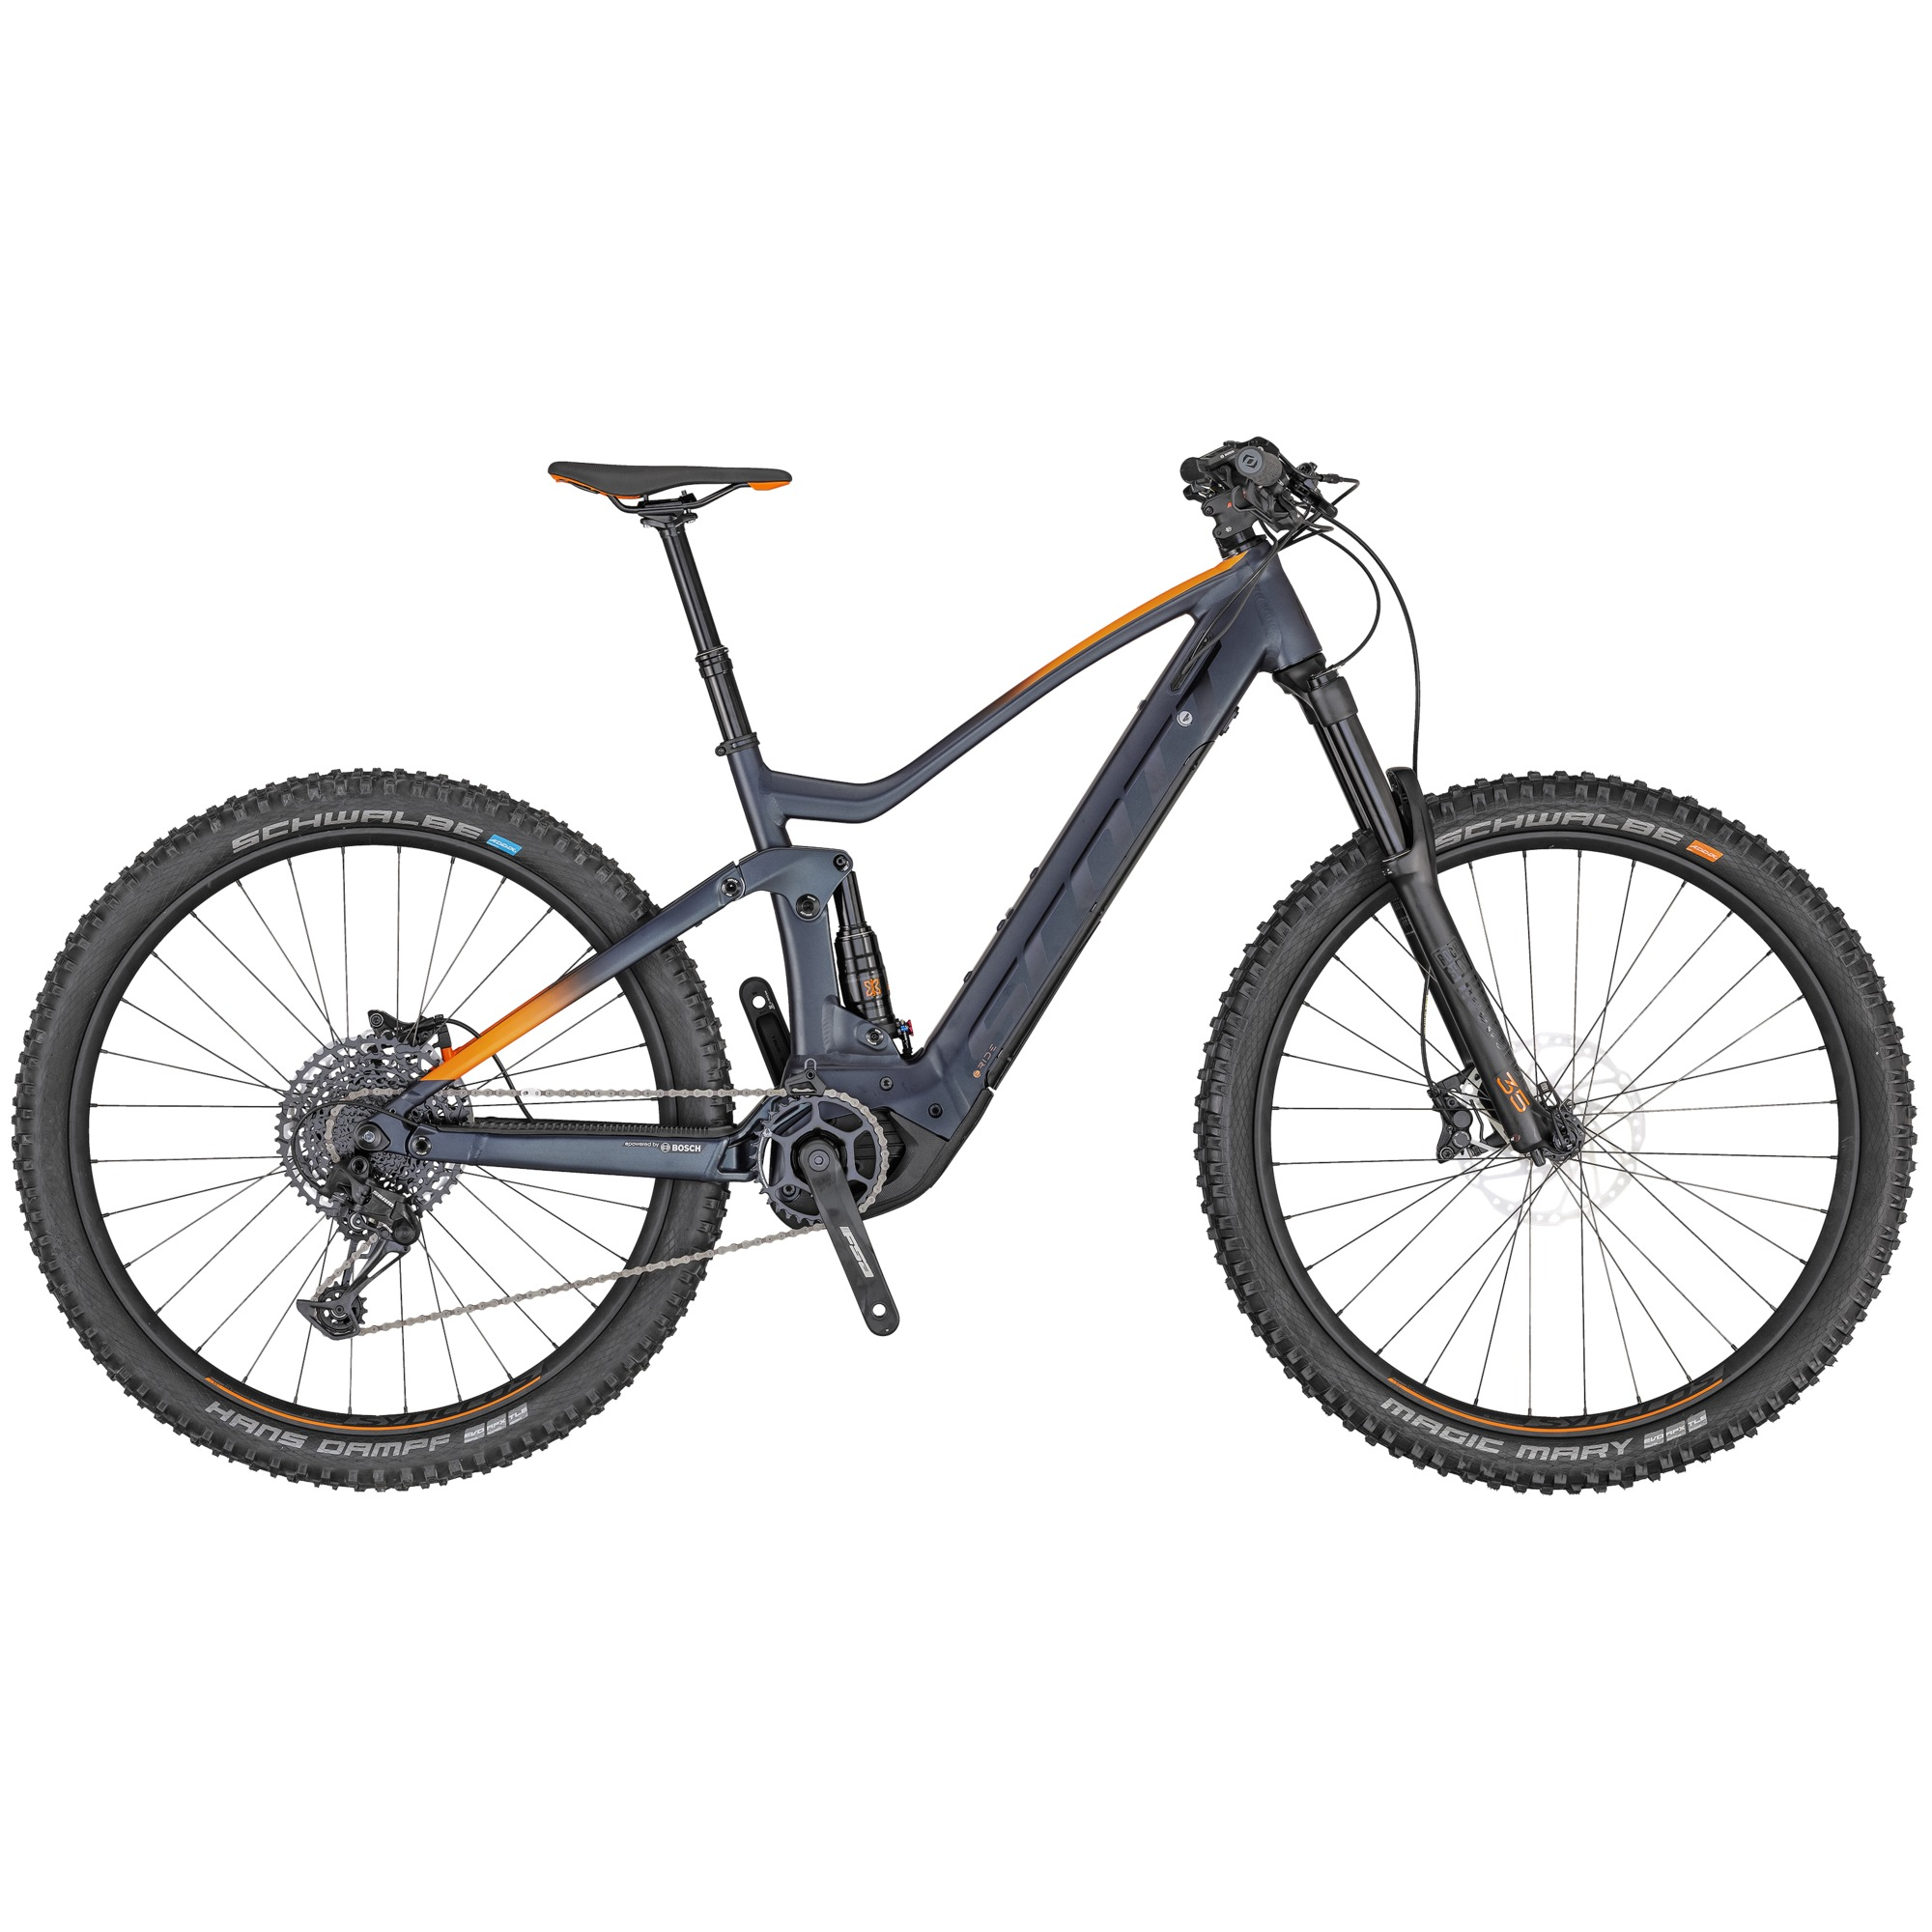 2020 Scott Genius eRide 930 Electric FS Mountain Bike in Black | MTB